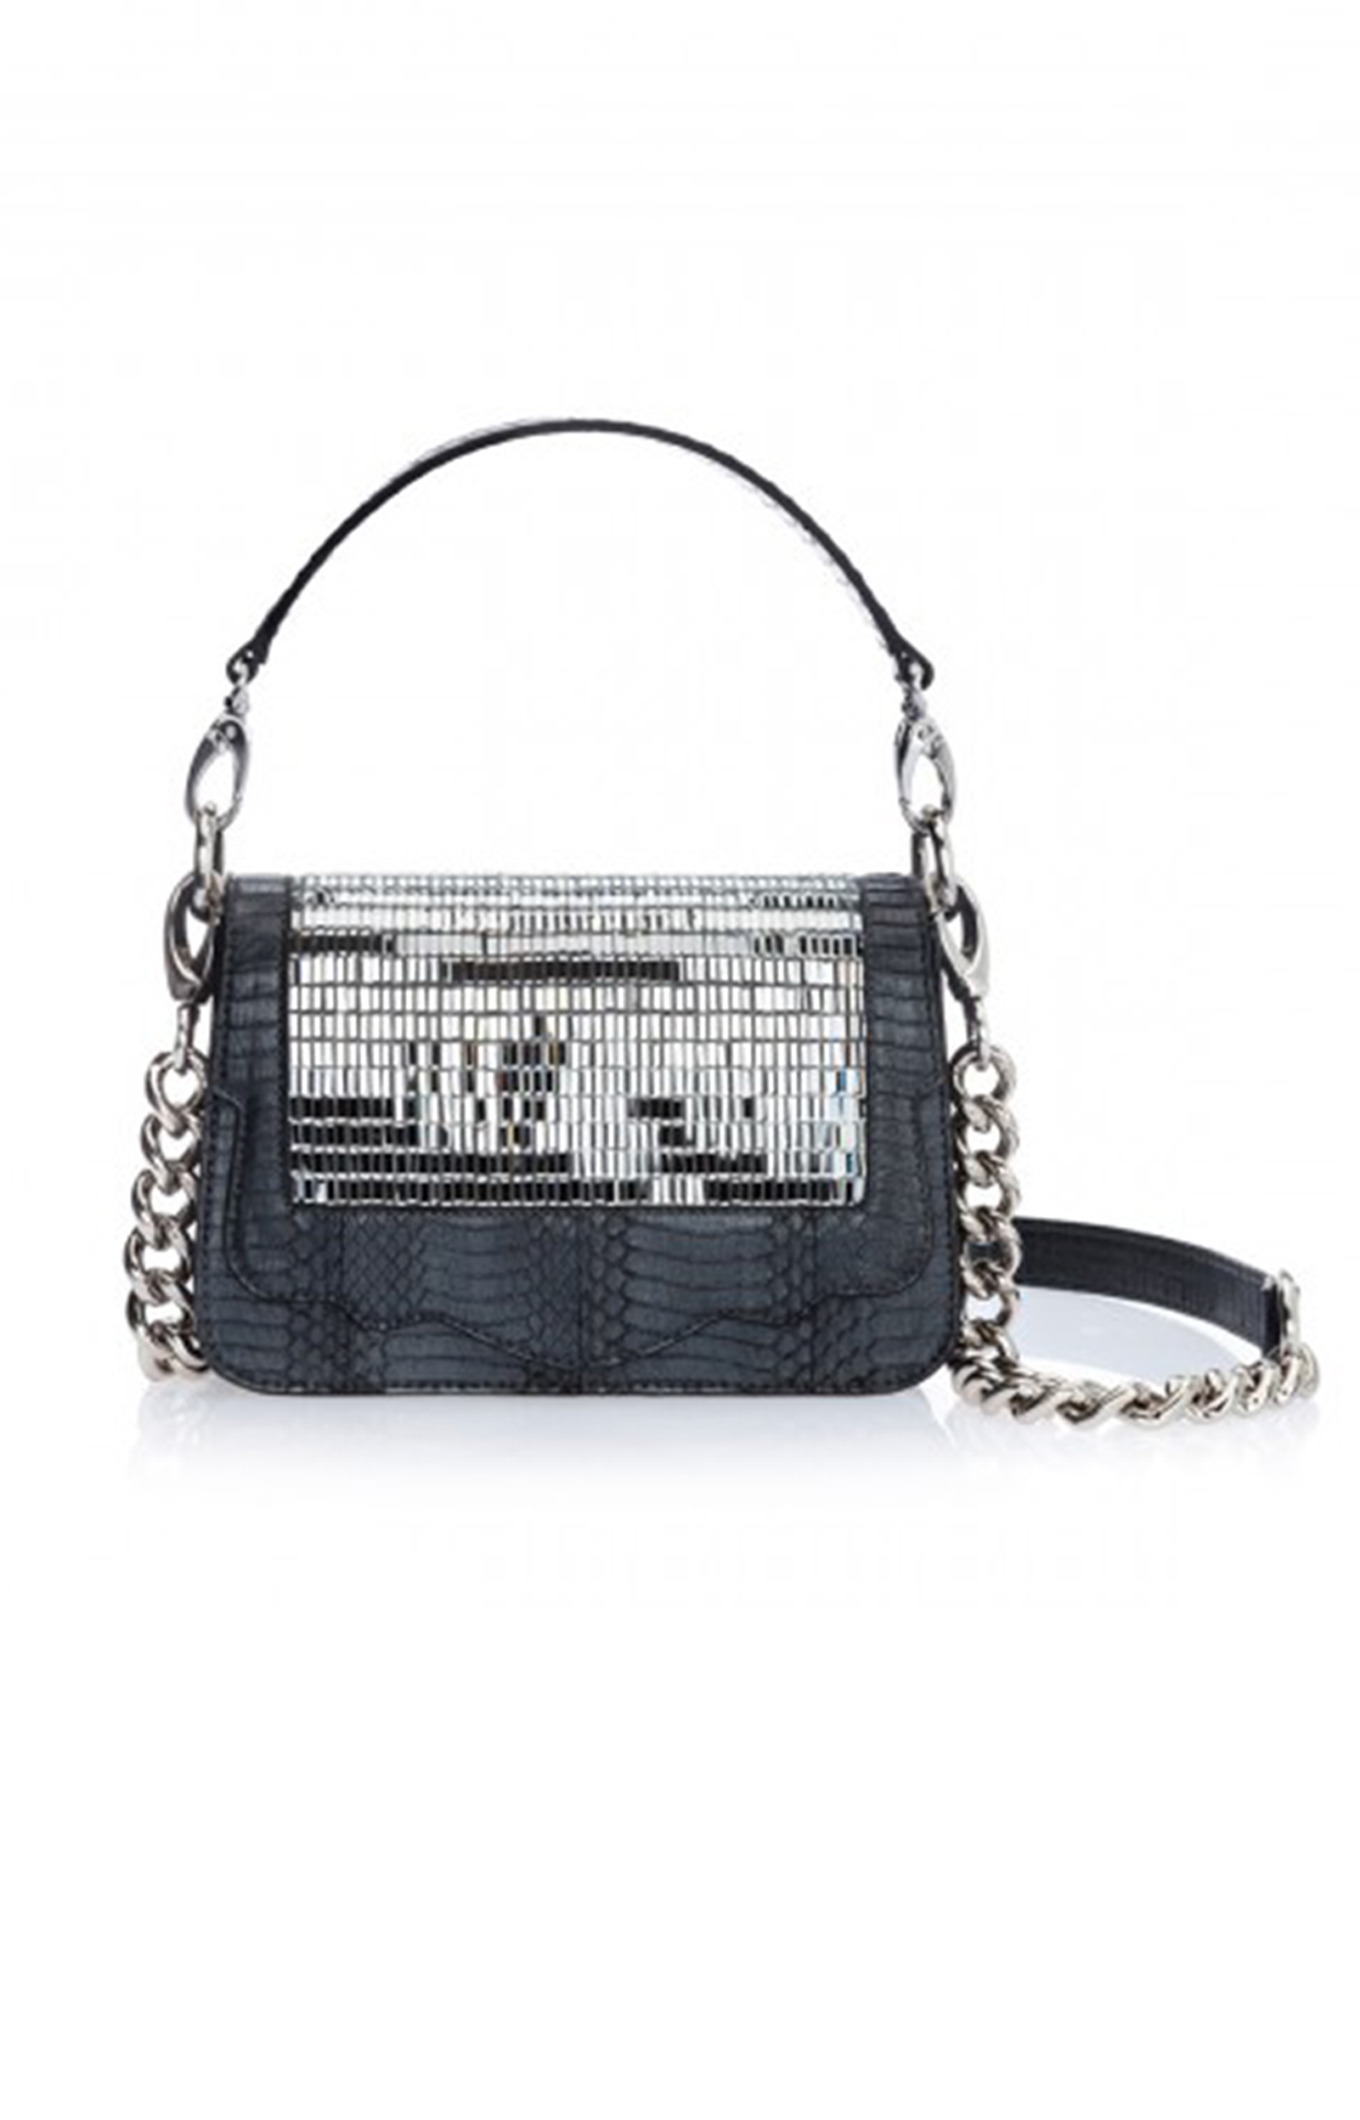 Thale Blanc <br>Spring 2017<br>audreyette nuvo mini crystals black-silver-formatted